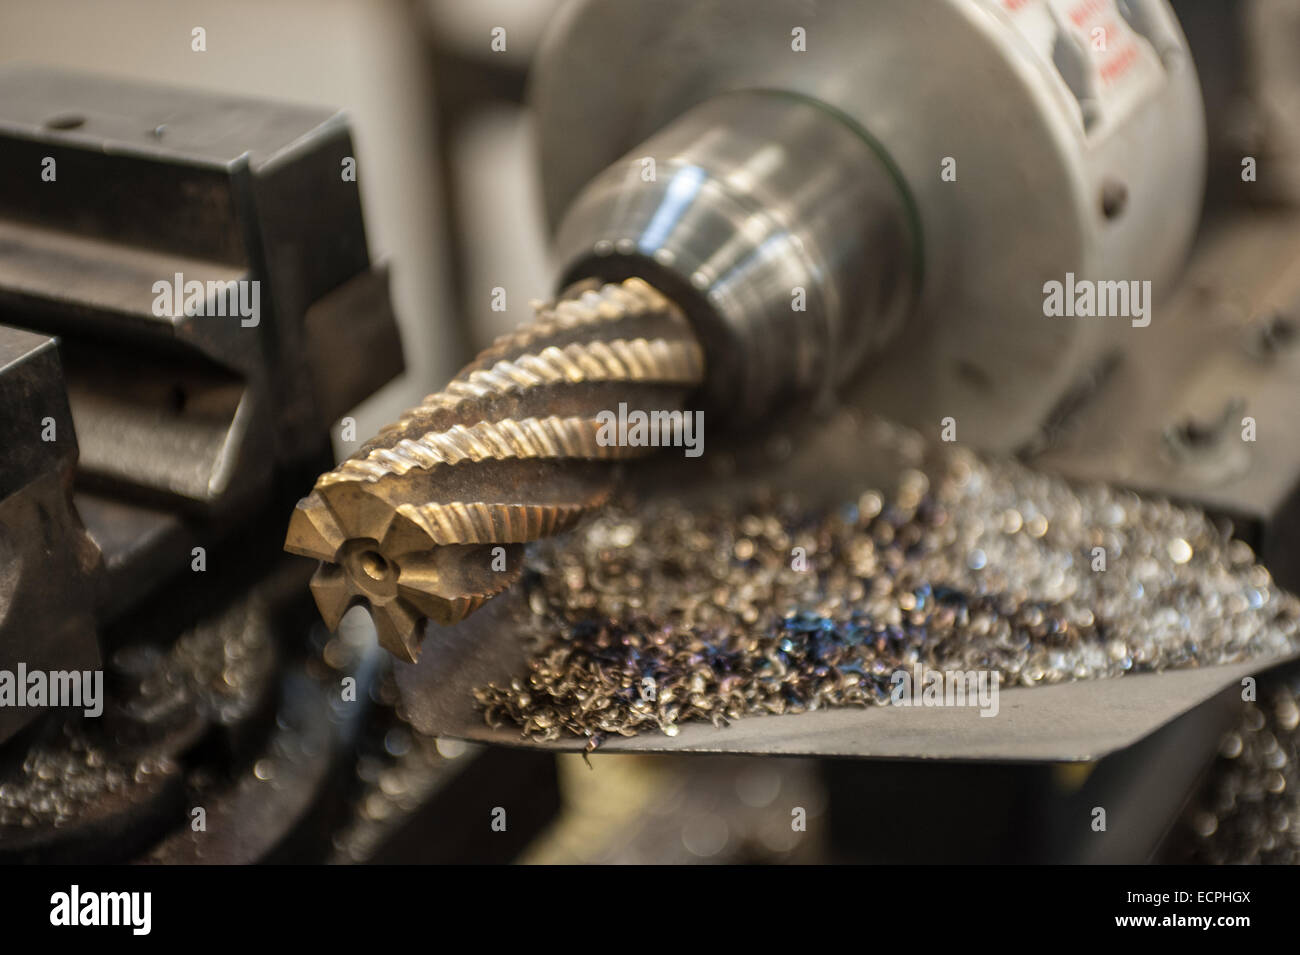 Steel grinder for coping round handrails with steel shavings located in a miscellaneous metal shop. - Stock Image